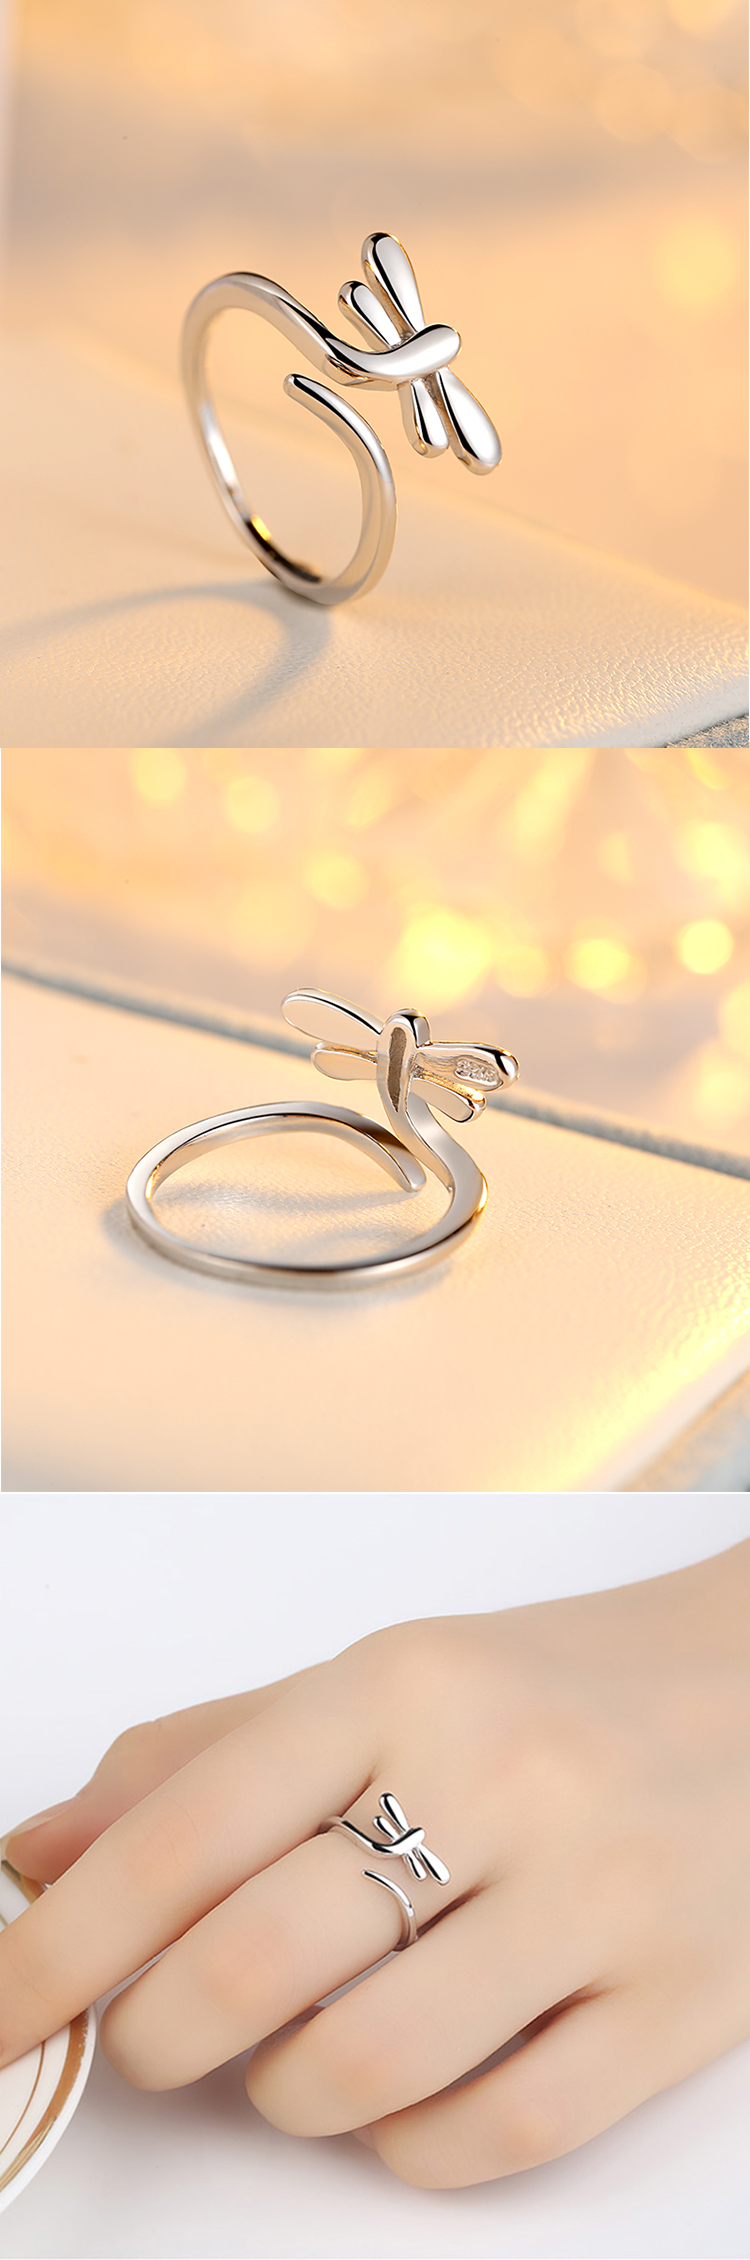 Top sell s925 sterling silver lovely dragonfly open animal ring